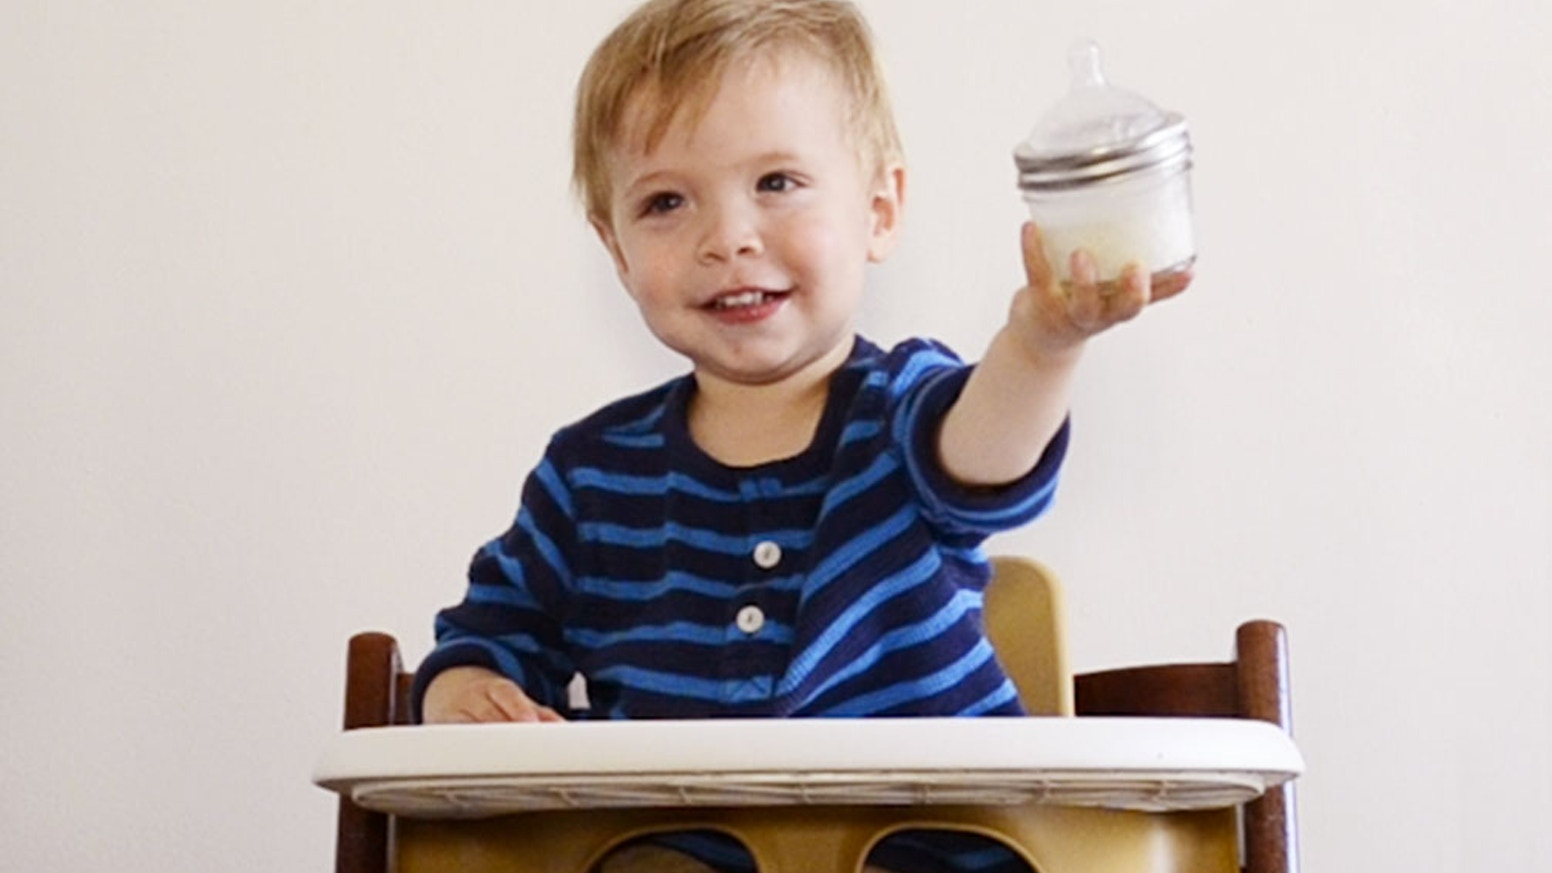 The glass baby bottle made with mason jars.   Non-toxic. Affordable. A baby bottle that's better for babies and for the planet.